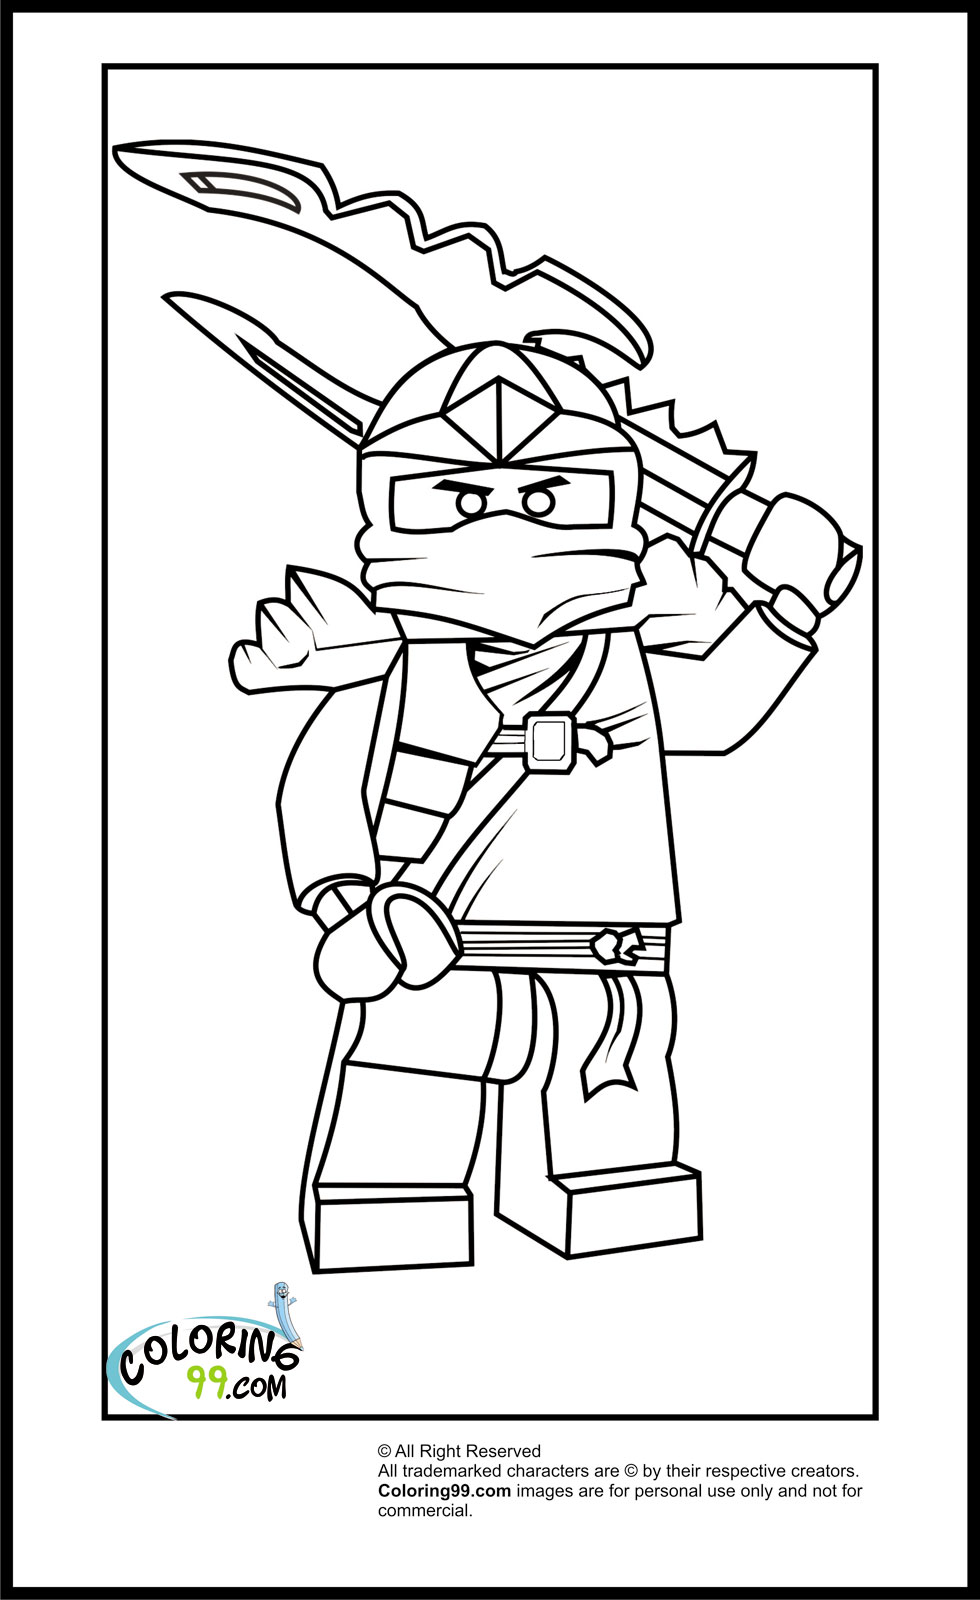 Lego Ninjago Coloring Pages Free Printable Pictures Lego Color Sheet